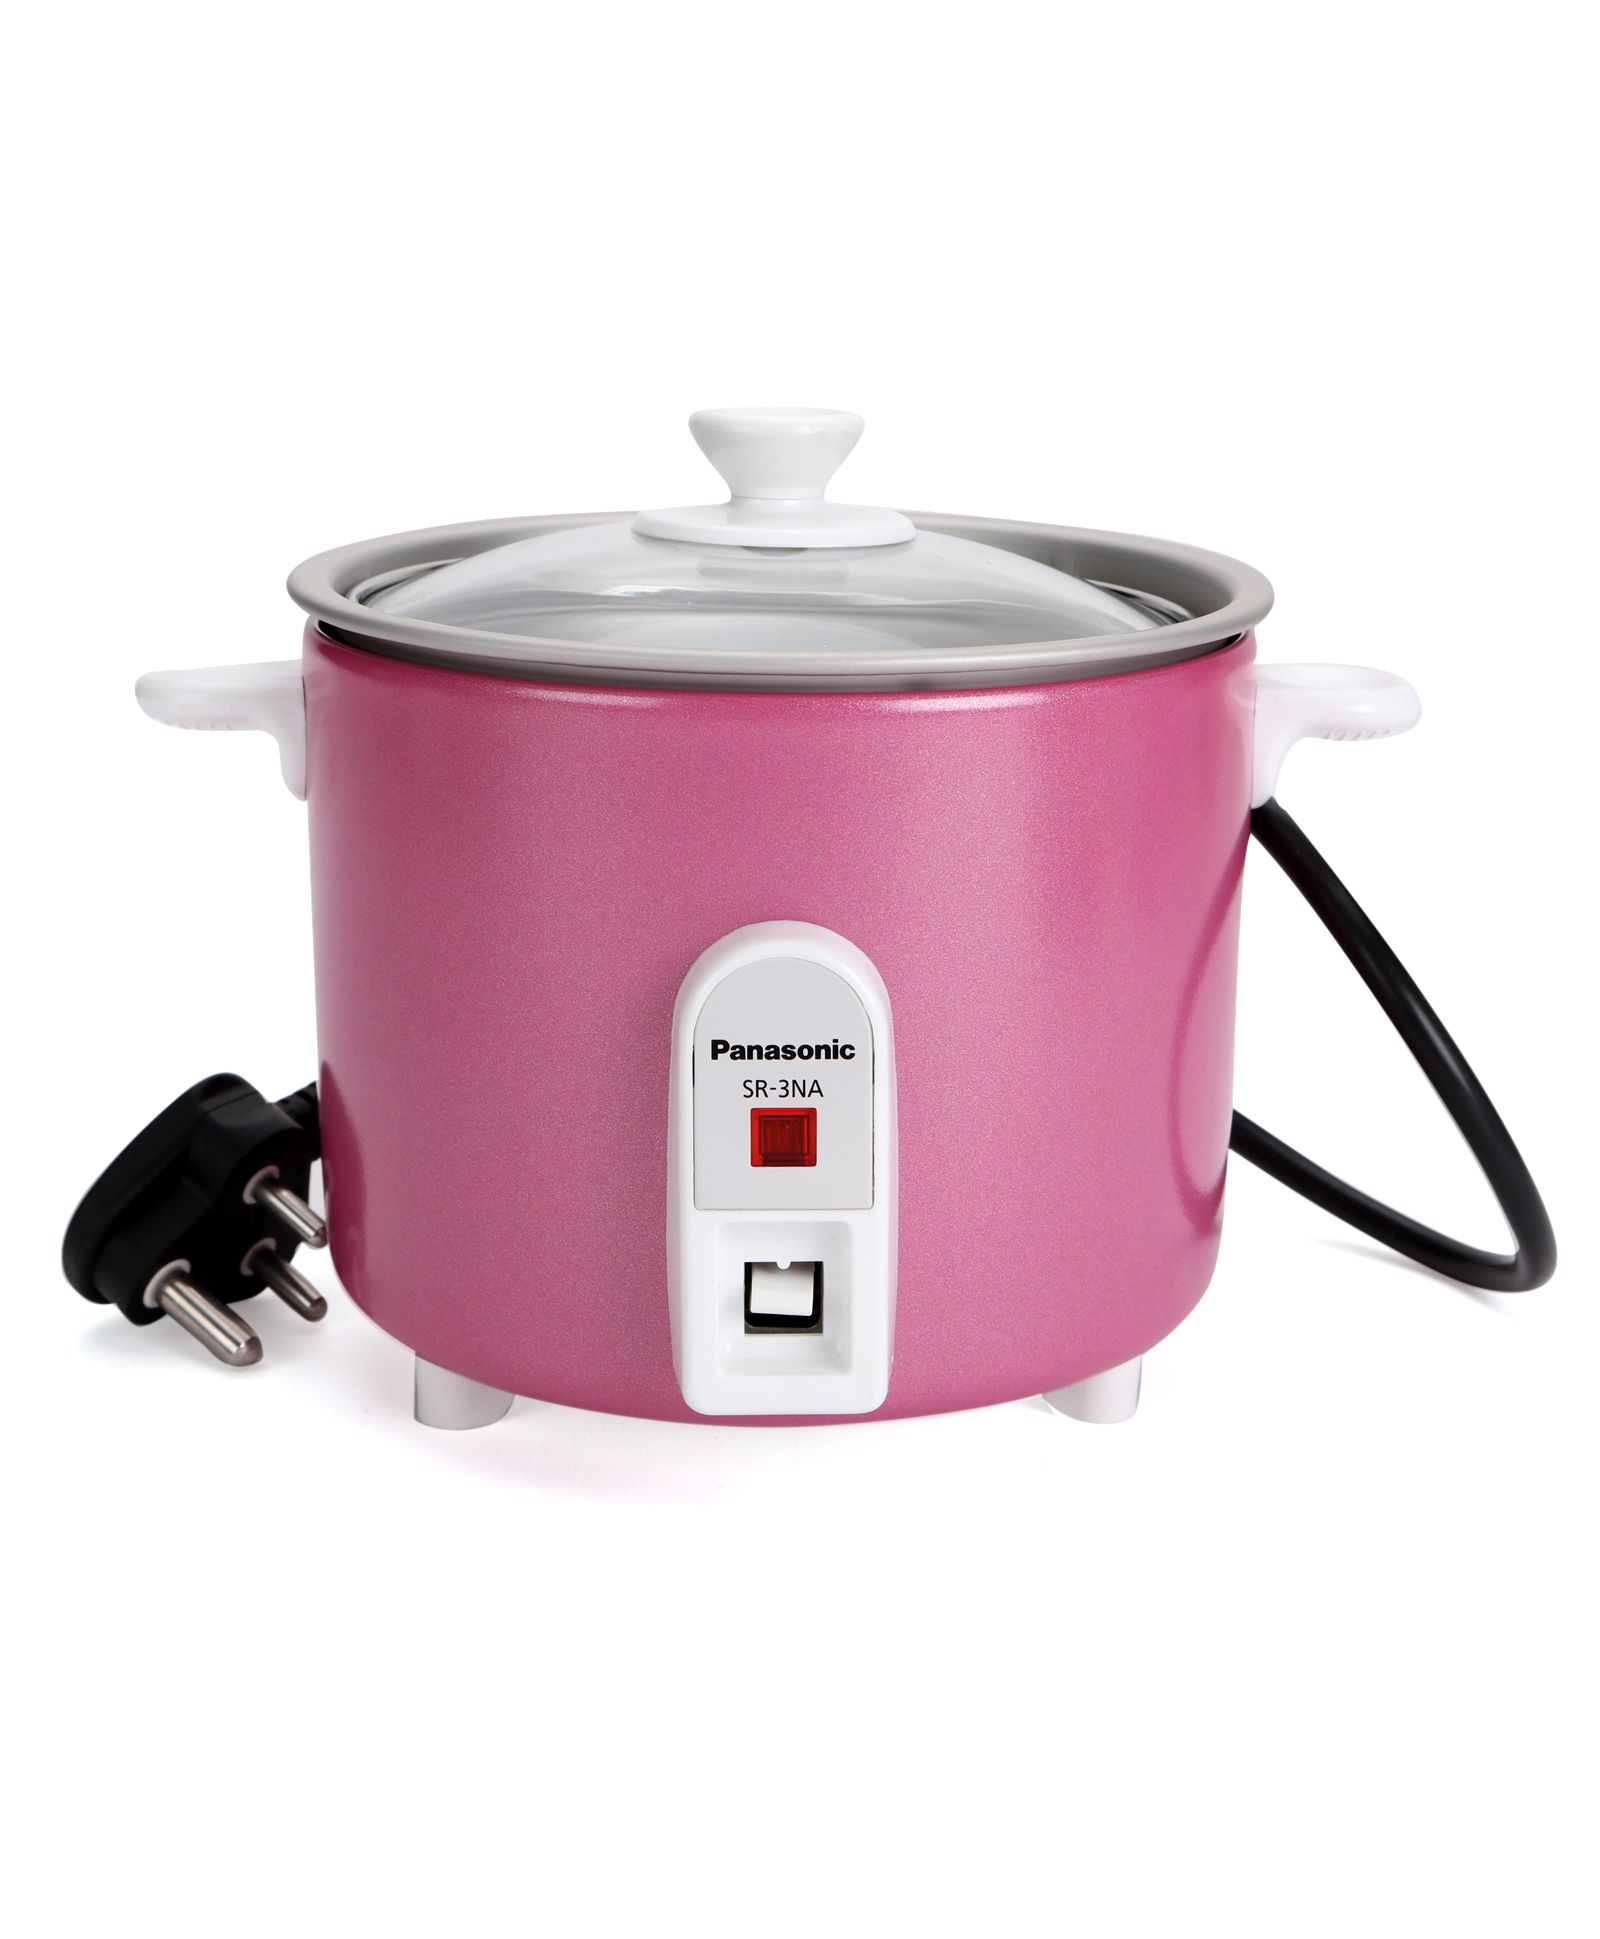 Panasonic Automatic Baby Cooker Pink Online In India Buy At Best Safe Food Steam Select Color